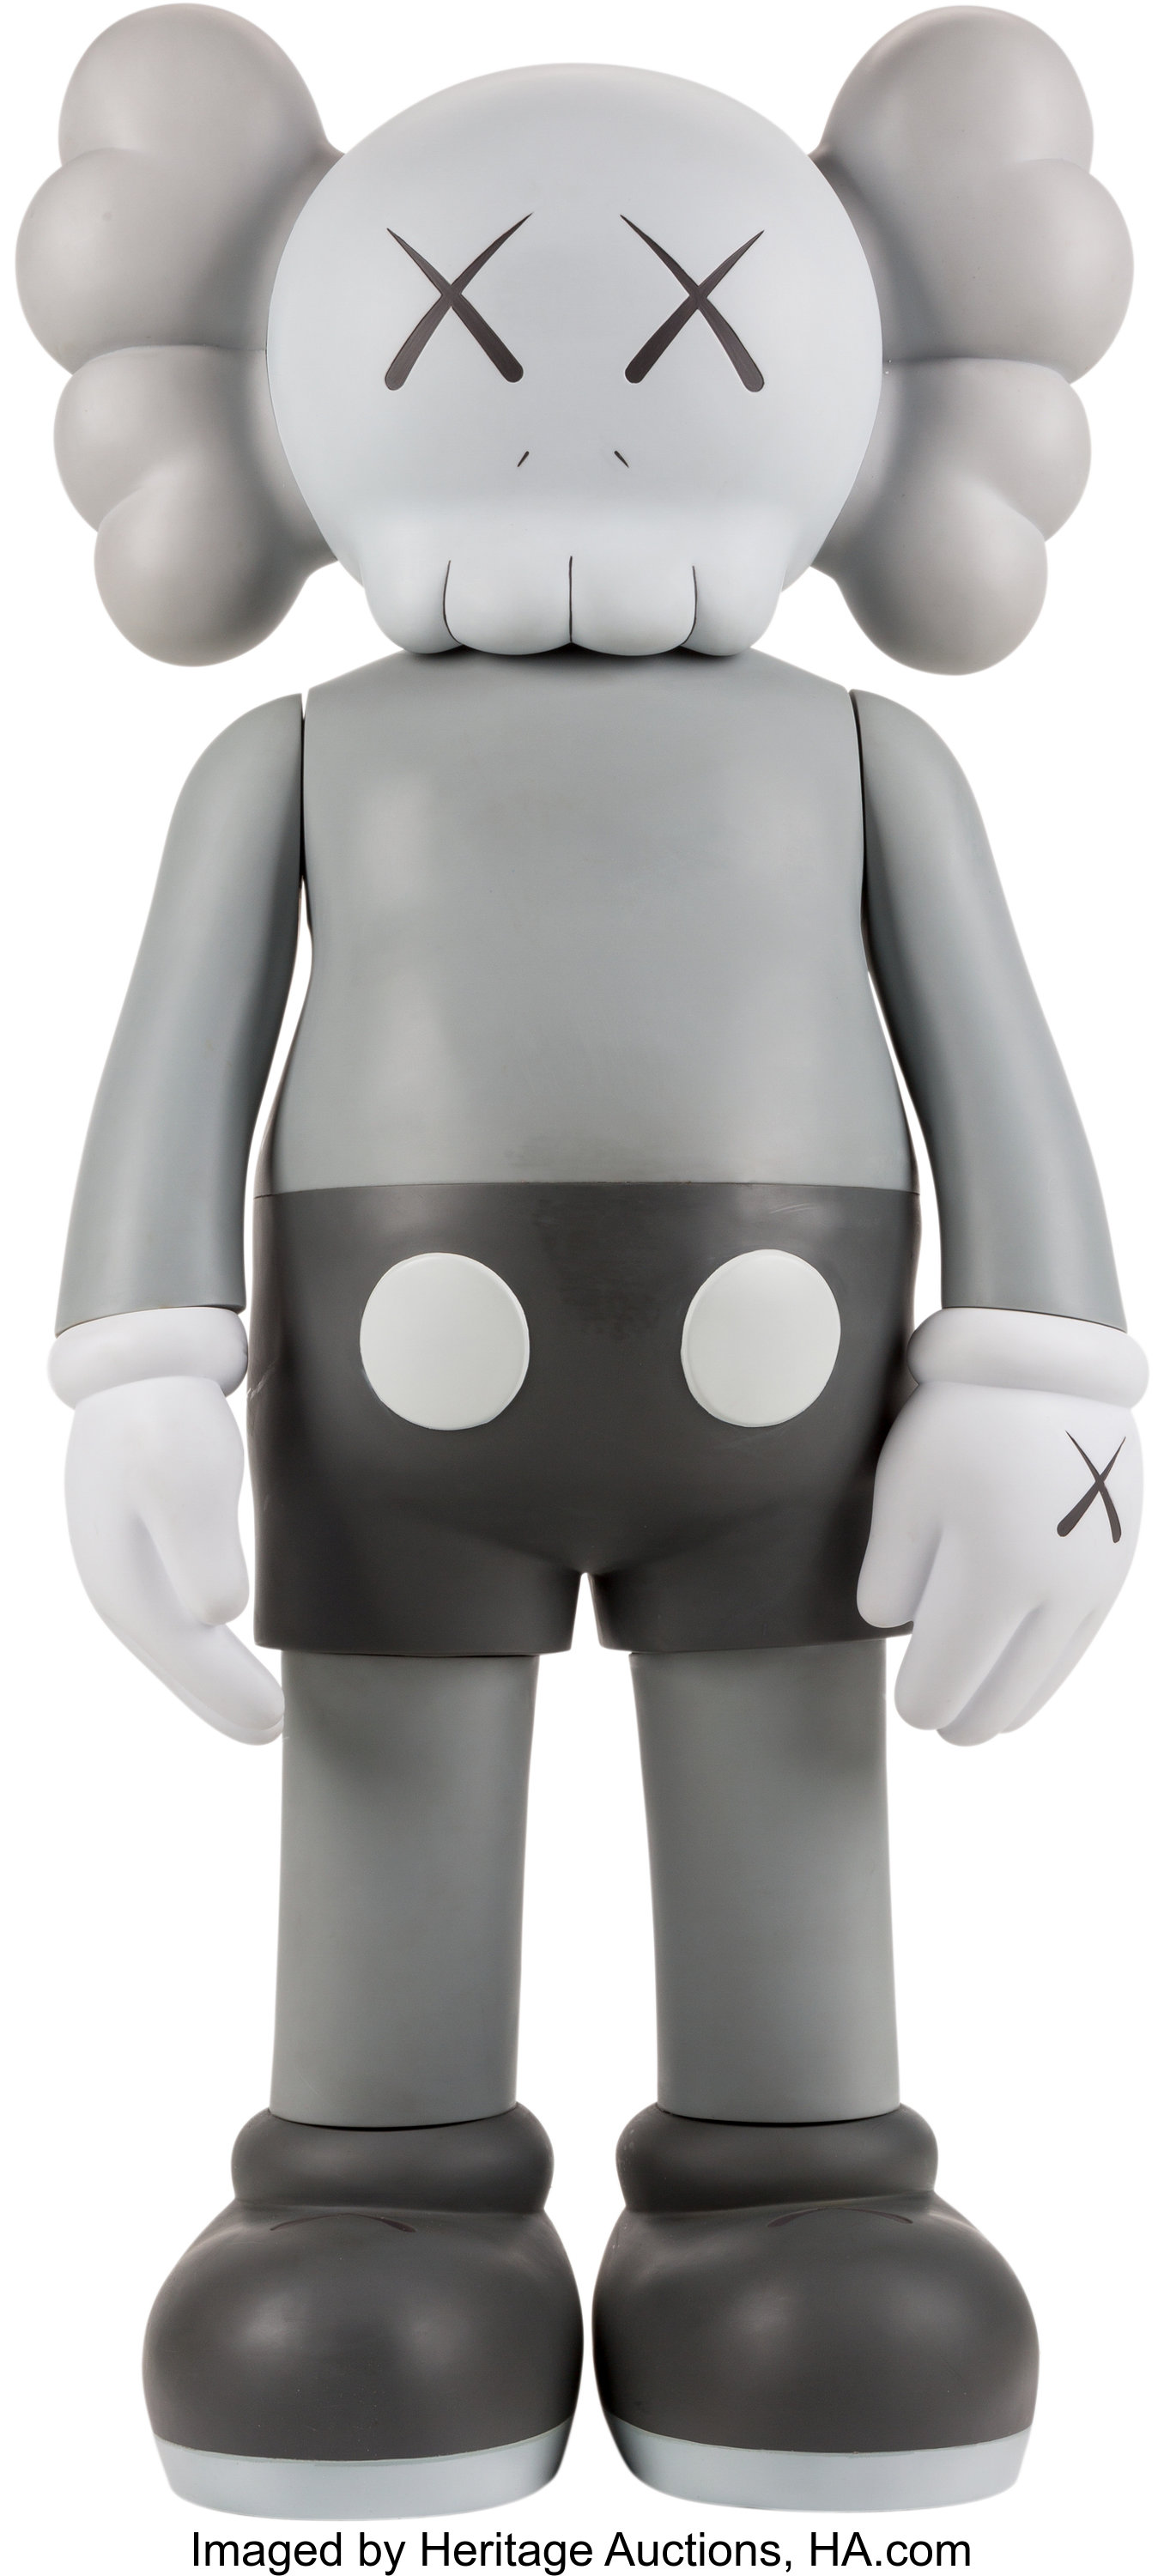 cfed9b97 KAWS (b. 1974). Companion (Grey), 2007. Painted cast vinyl. 50 x 22 | Lot  #69068 | Heritage Auctions